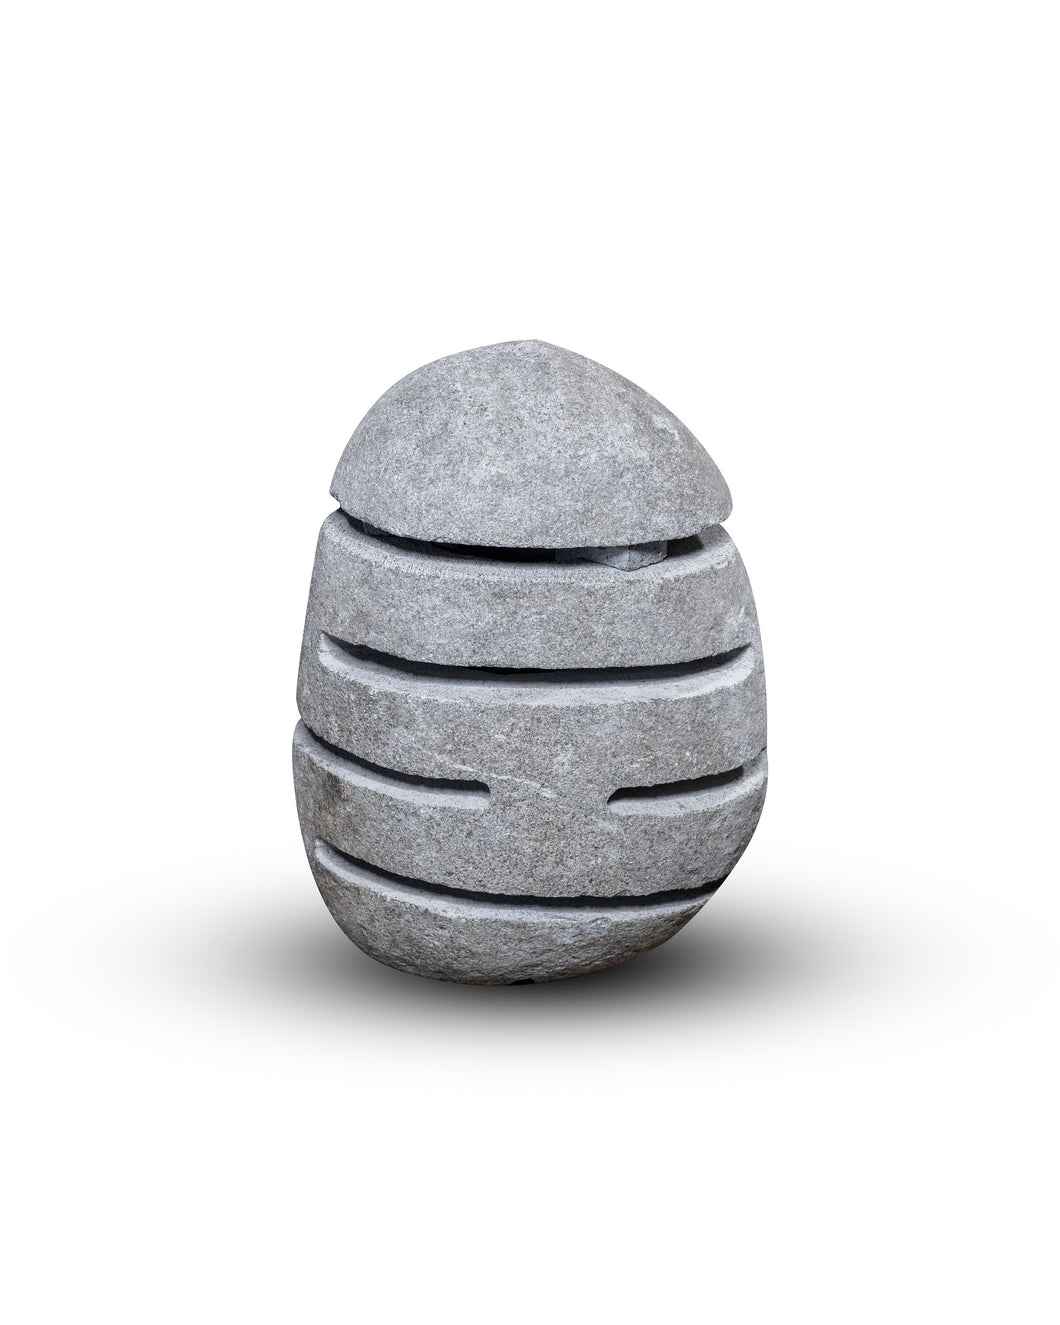 River Stone Egg Lantern , Modern Garden Candle Lighting #2 (COMING IN THE END OF AUGUST)